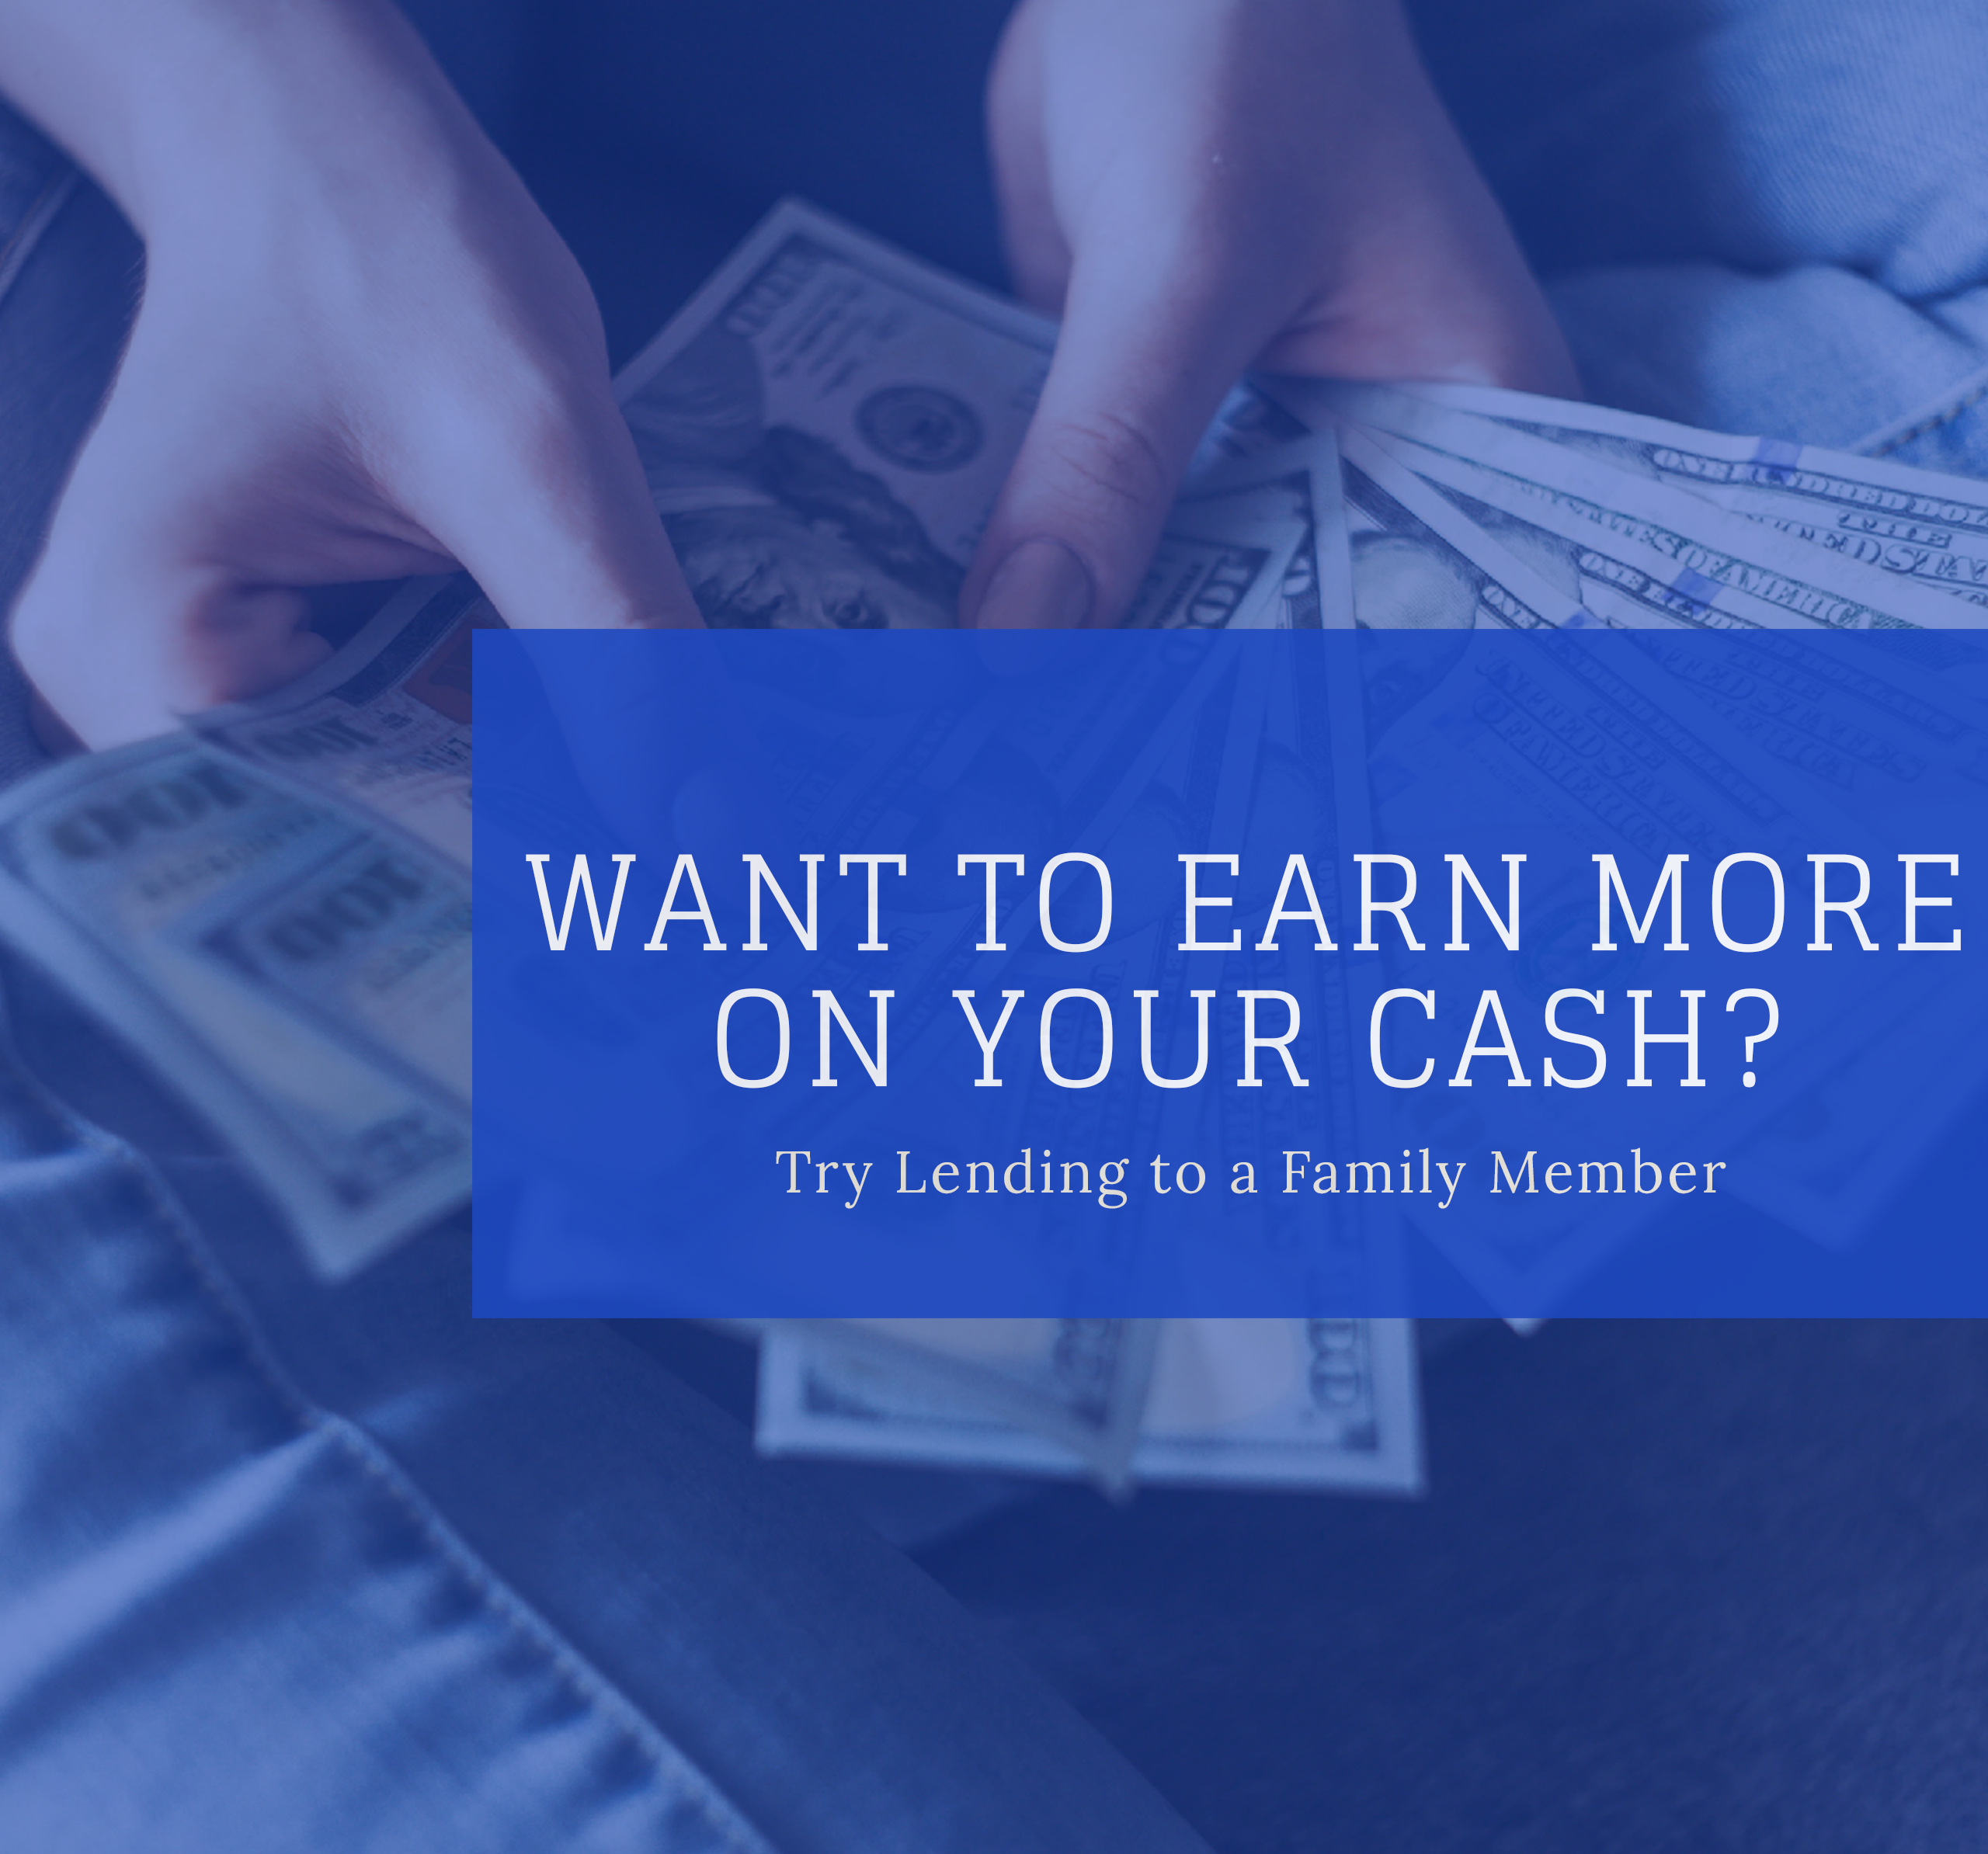 Want to Earn More on Your Cash? Try Lending to a Family Member